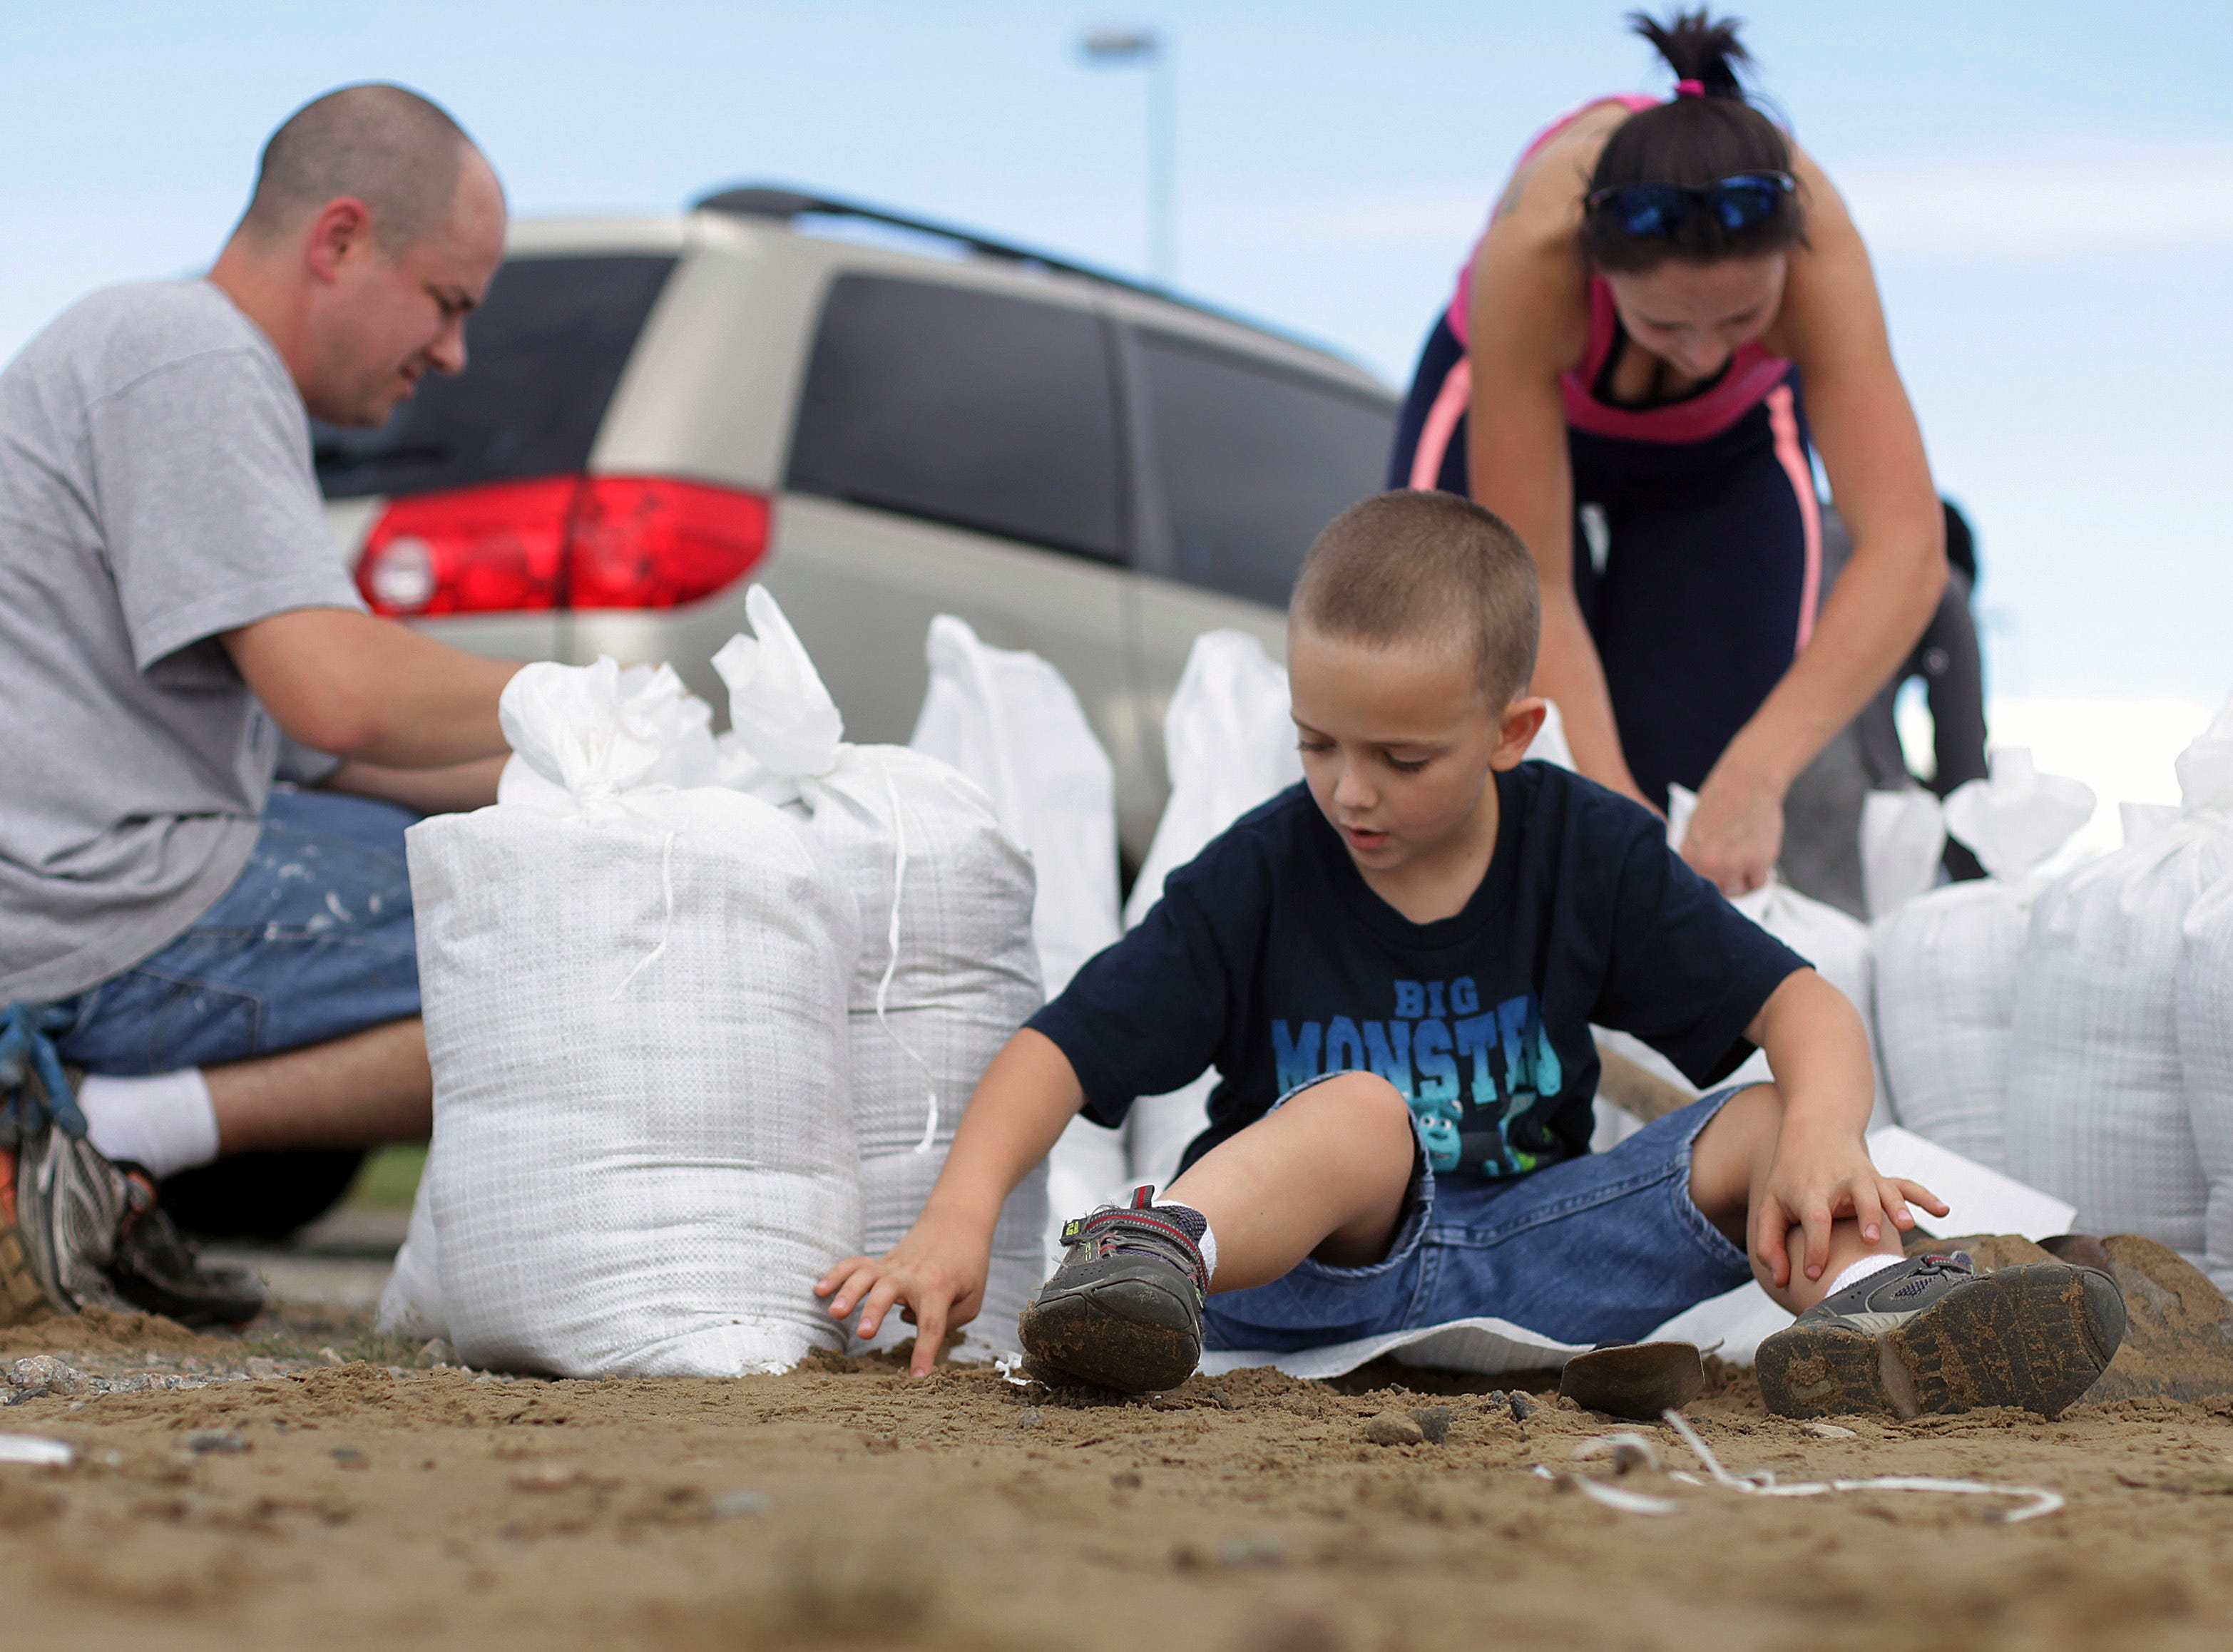 Topher Snyder, 7, plays in leftover sand as his parents Jeremy, left, and Tobi, center, tie off sandbags on Tuesday, Sept 11, 2018, in Virginia Beach. The city dumped mounds of free sand in one of the parking lots at the Virginia Beach Sportsplex for residents to use ahead of Hurricane Florence.